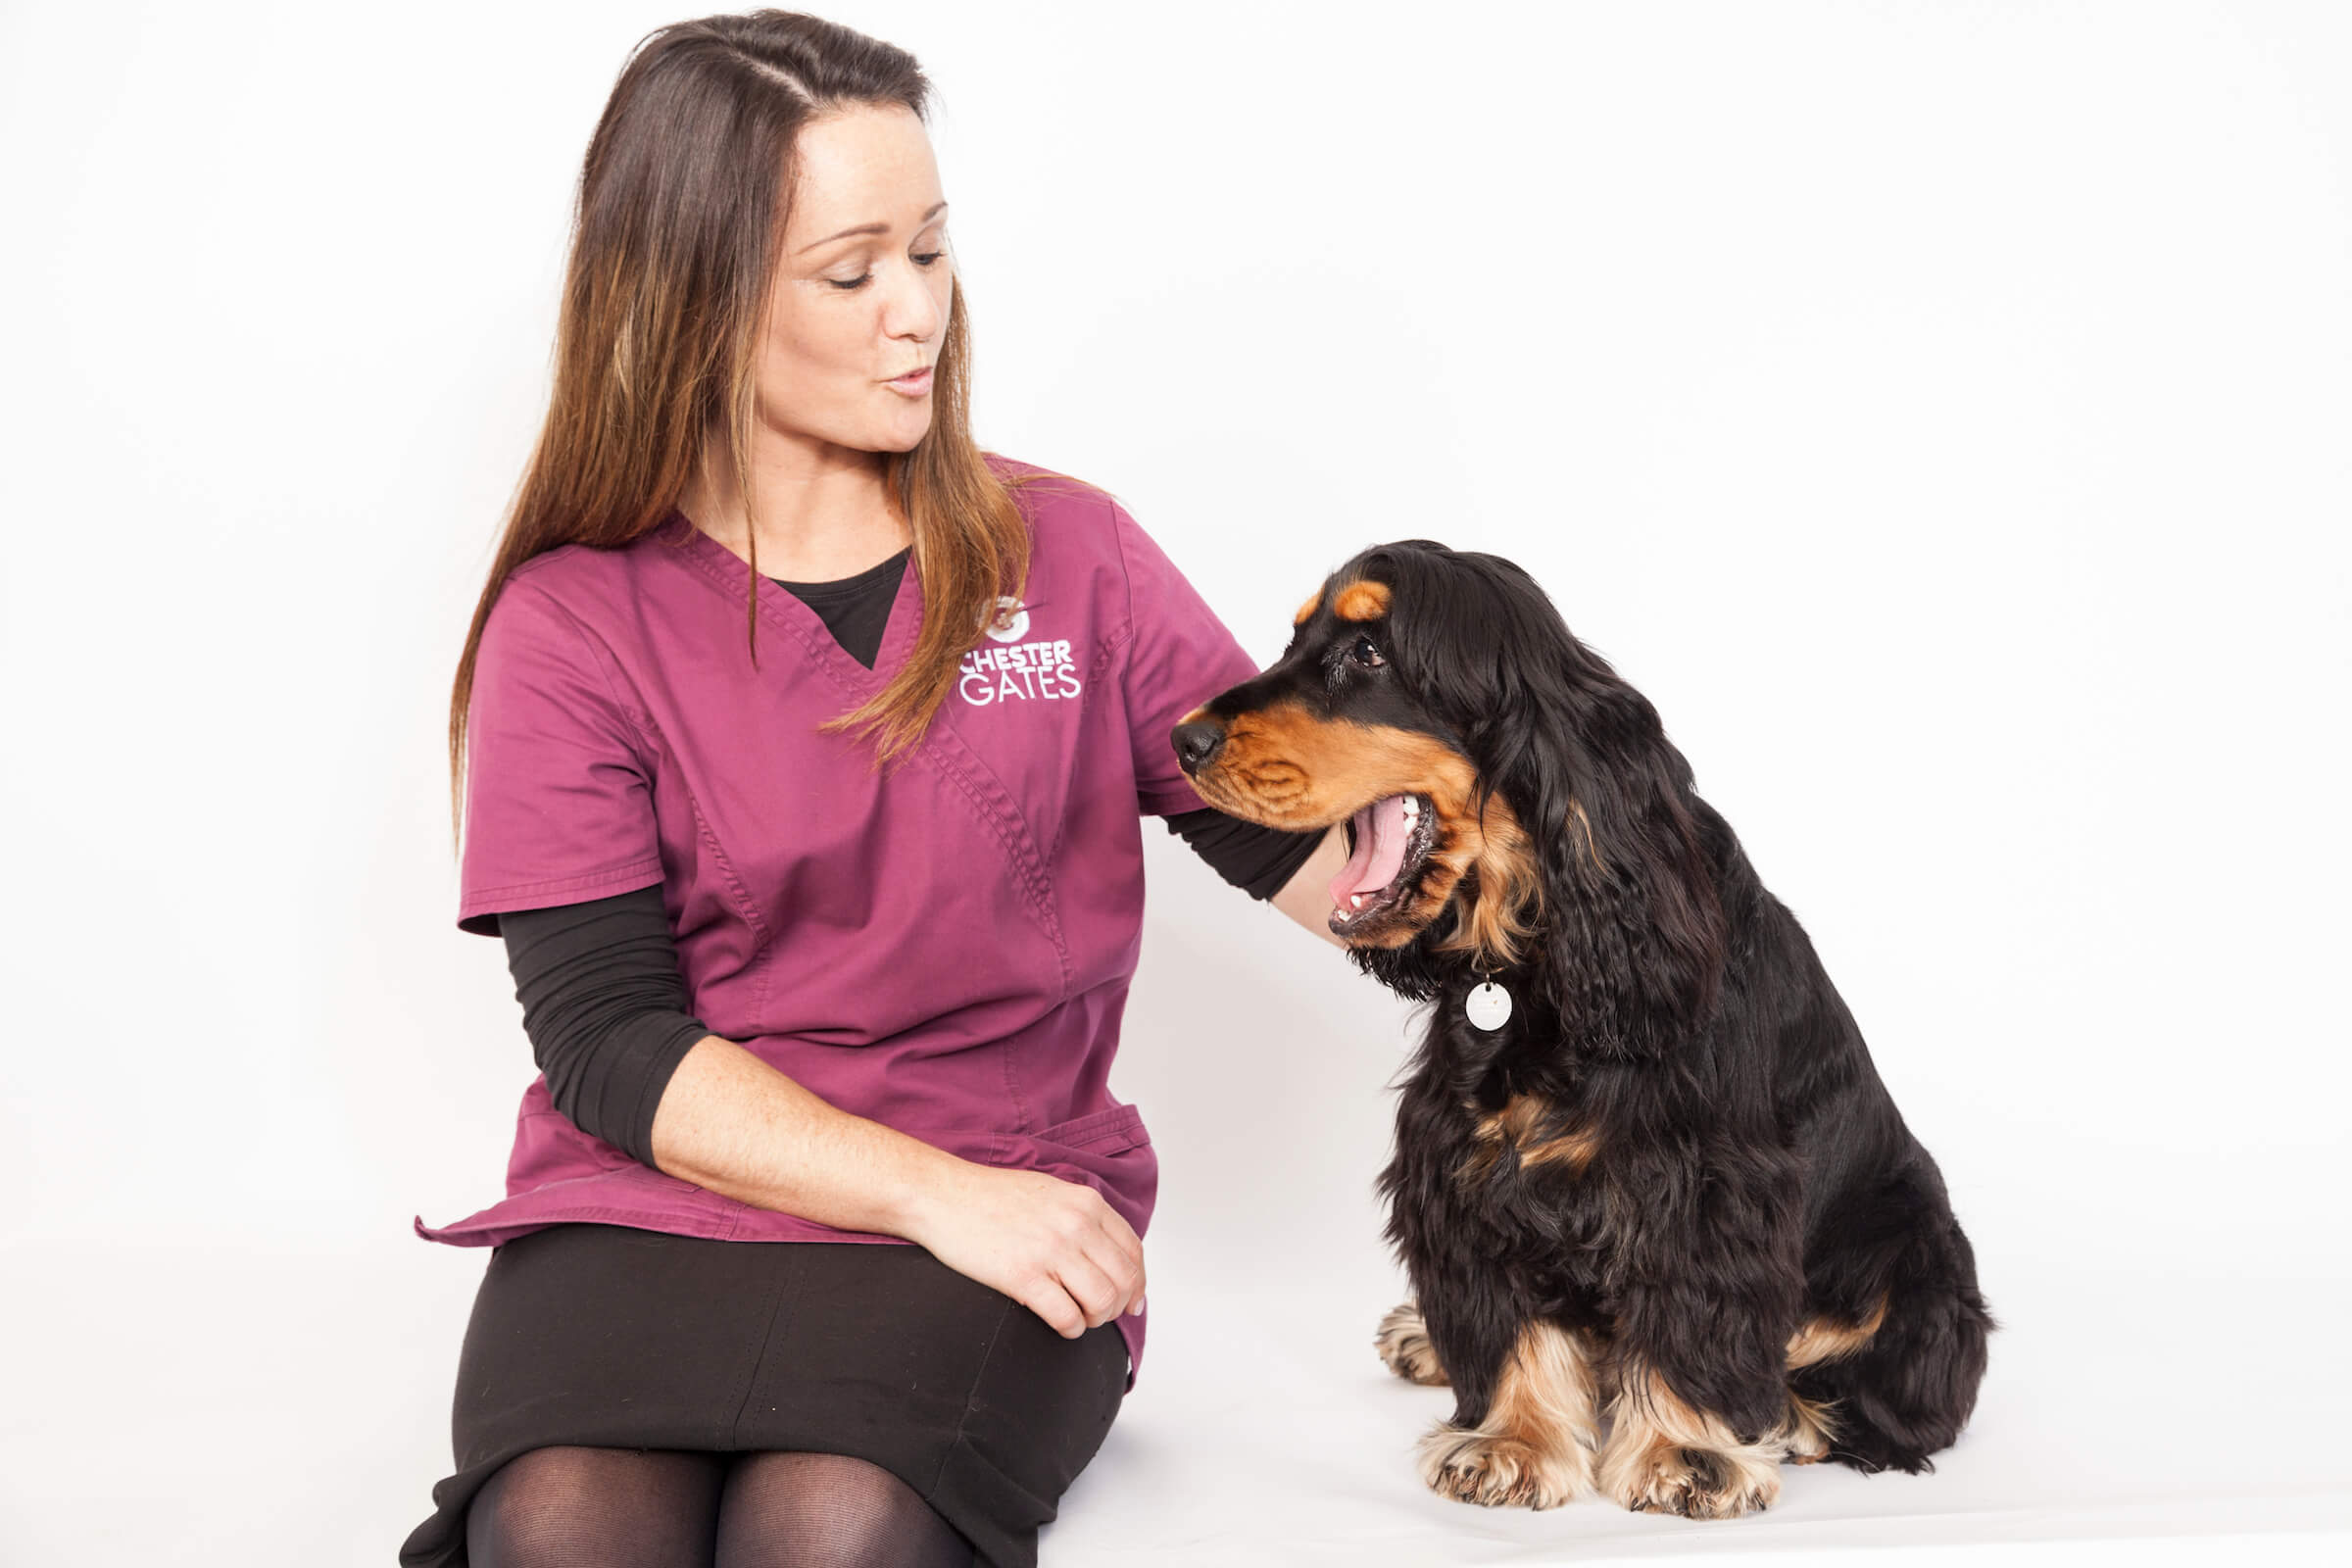 What to do when your pet is referred?